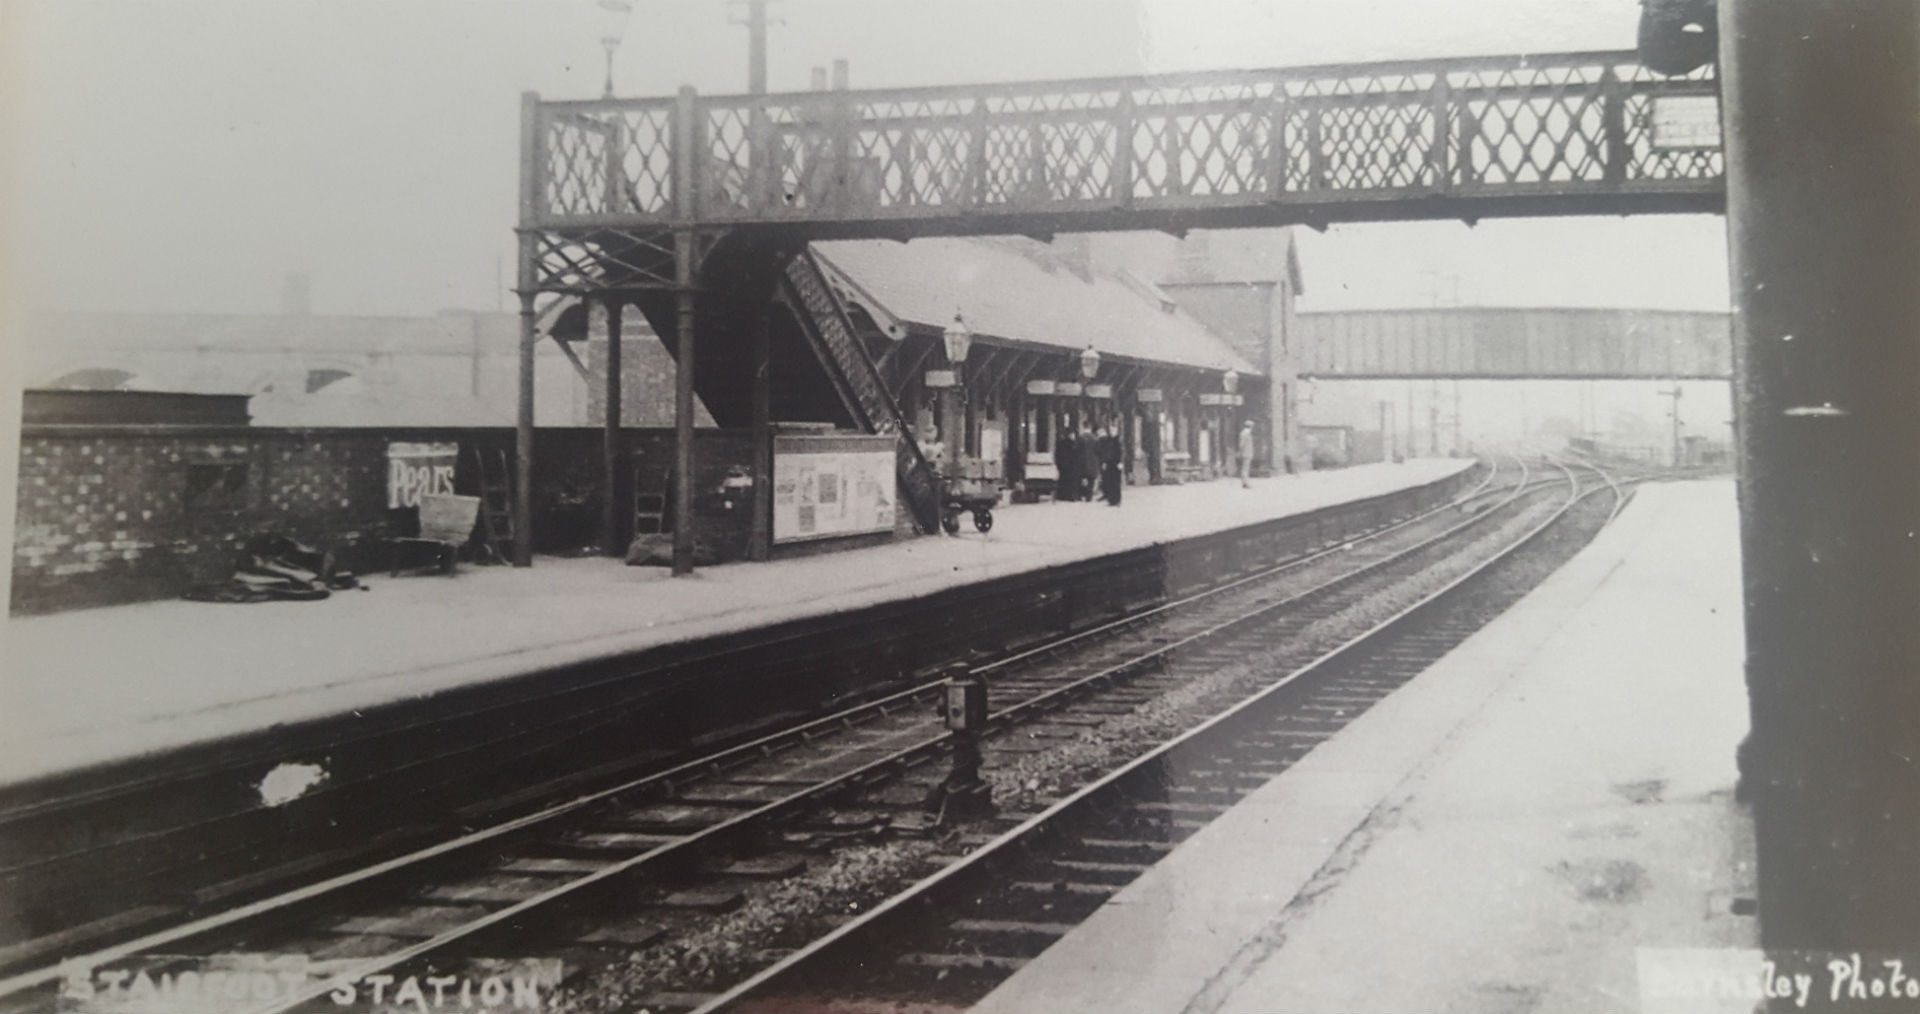 Stairfoot Station 1912 to 1913